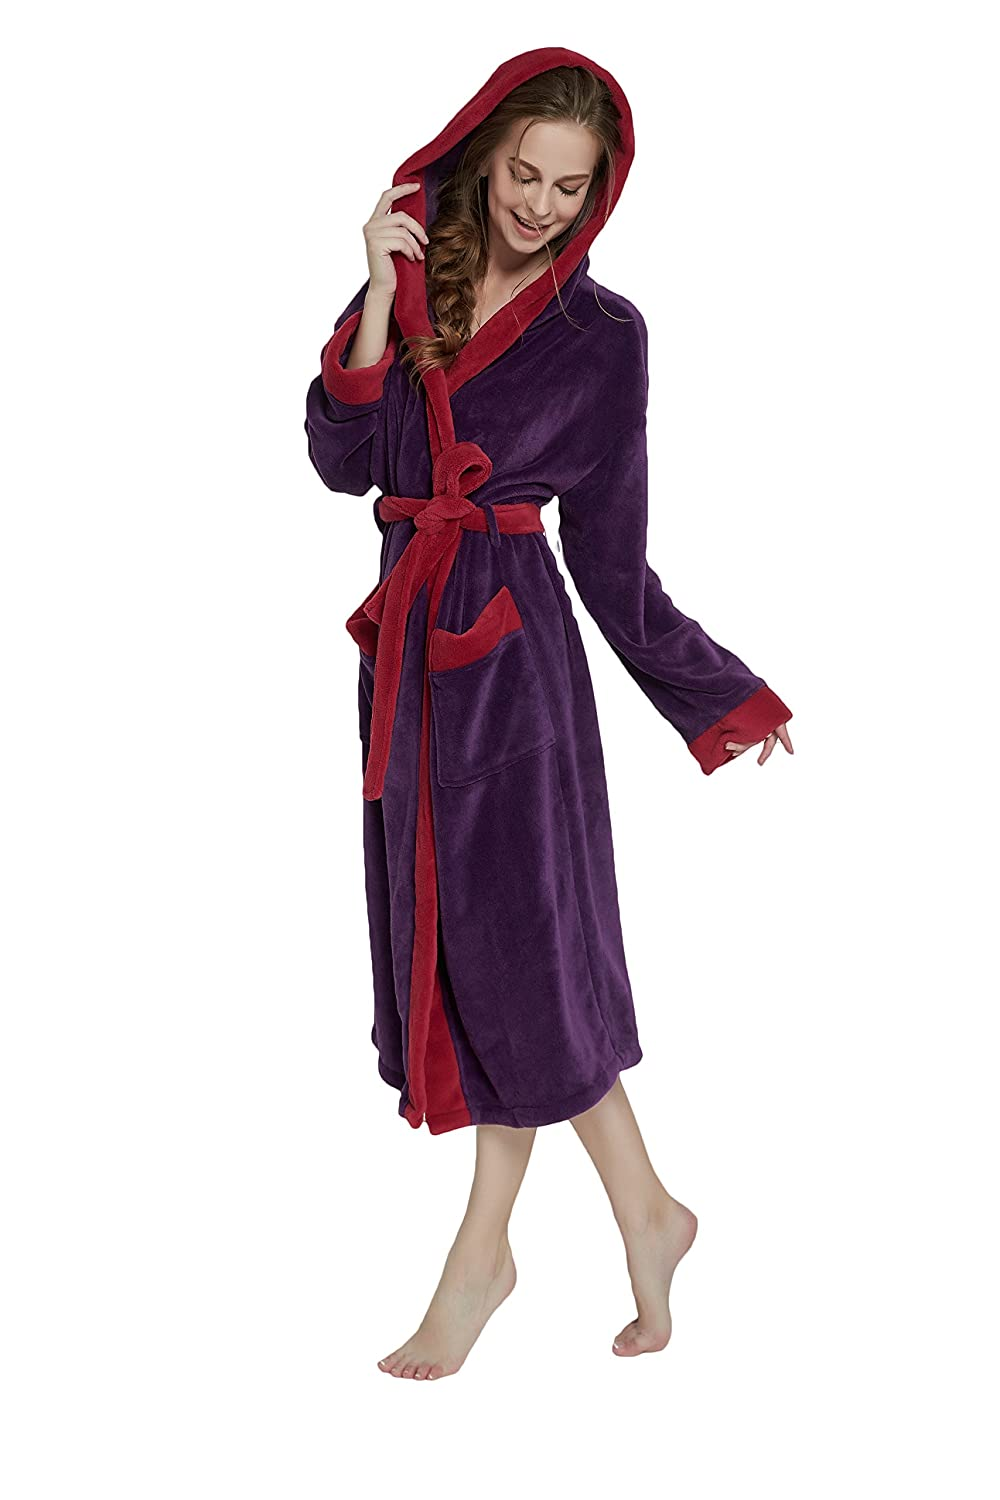 OUFANG Hat Herringbone Women's Bathrobe in 2 Tone Soft Spa Kimono Shawl Collar Robe